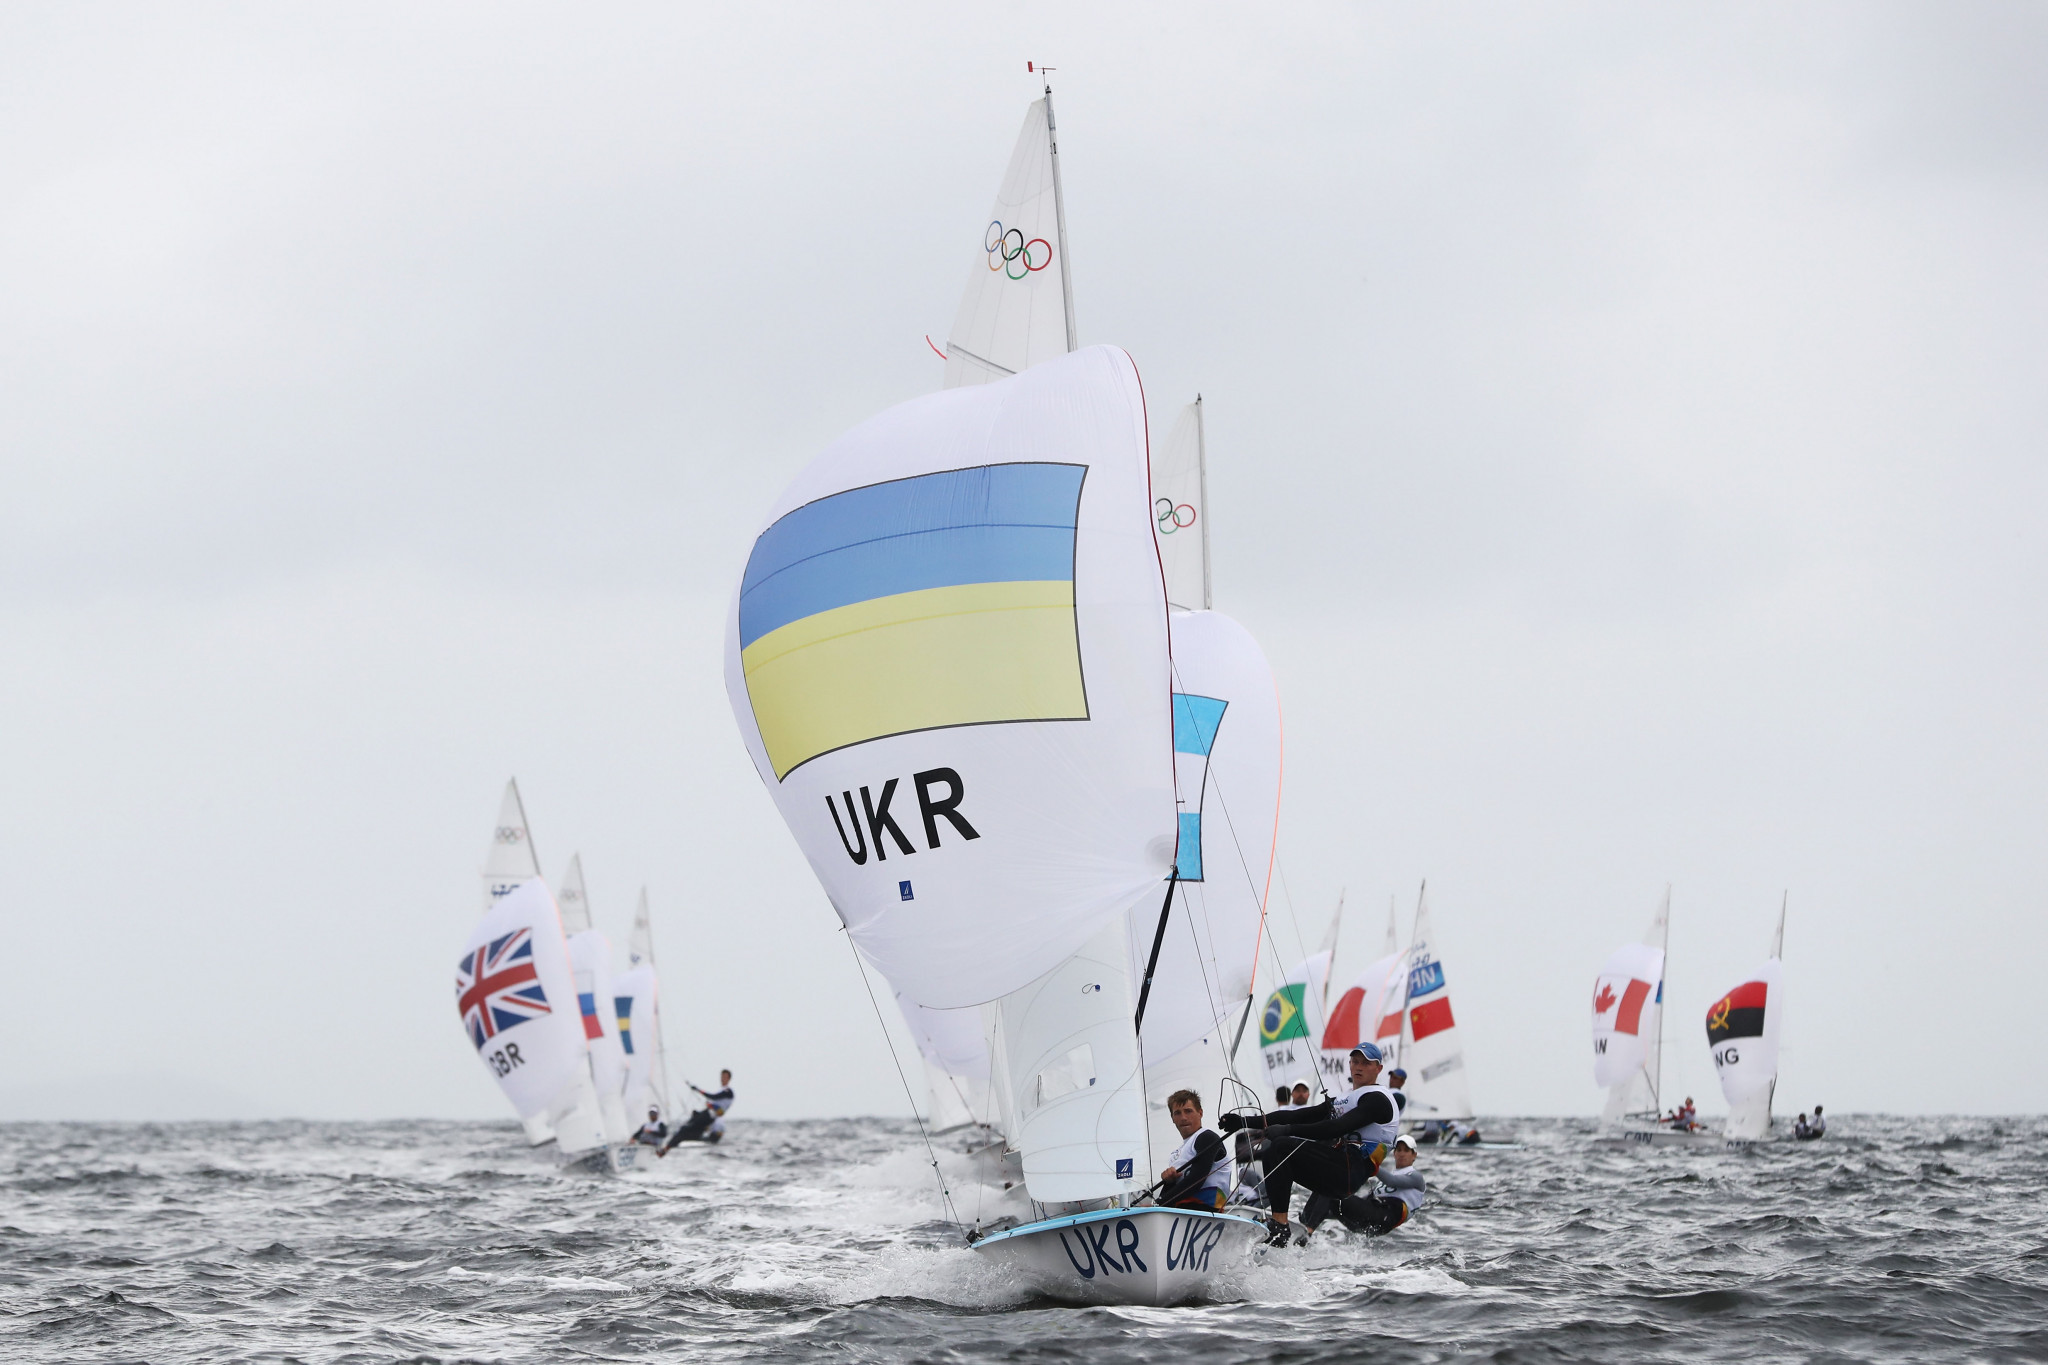 The Ukraine Sailing Federation have called on World Sailing to ban Russia, amid tensions over the Crimean Peninsula ©Getty Images